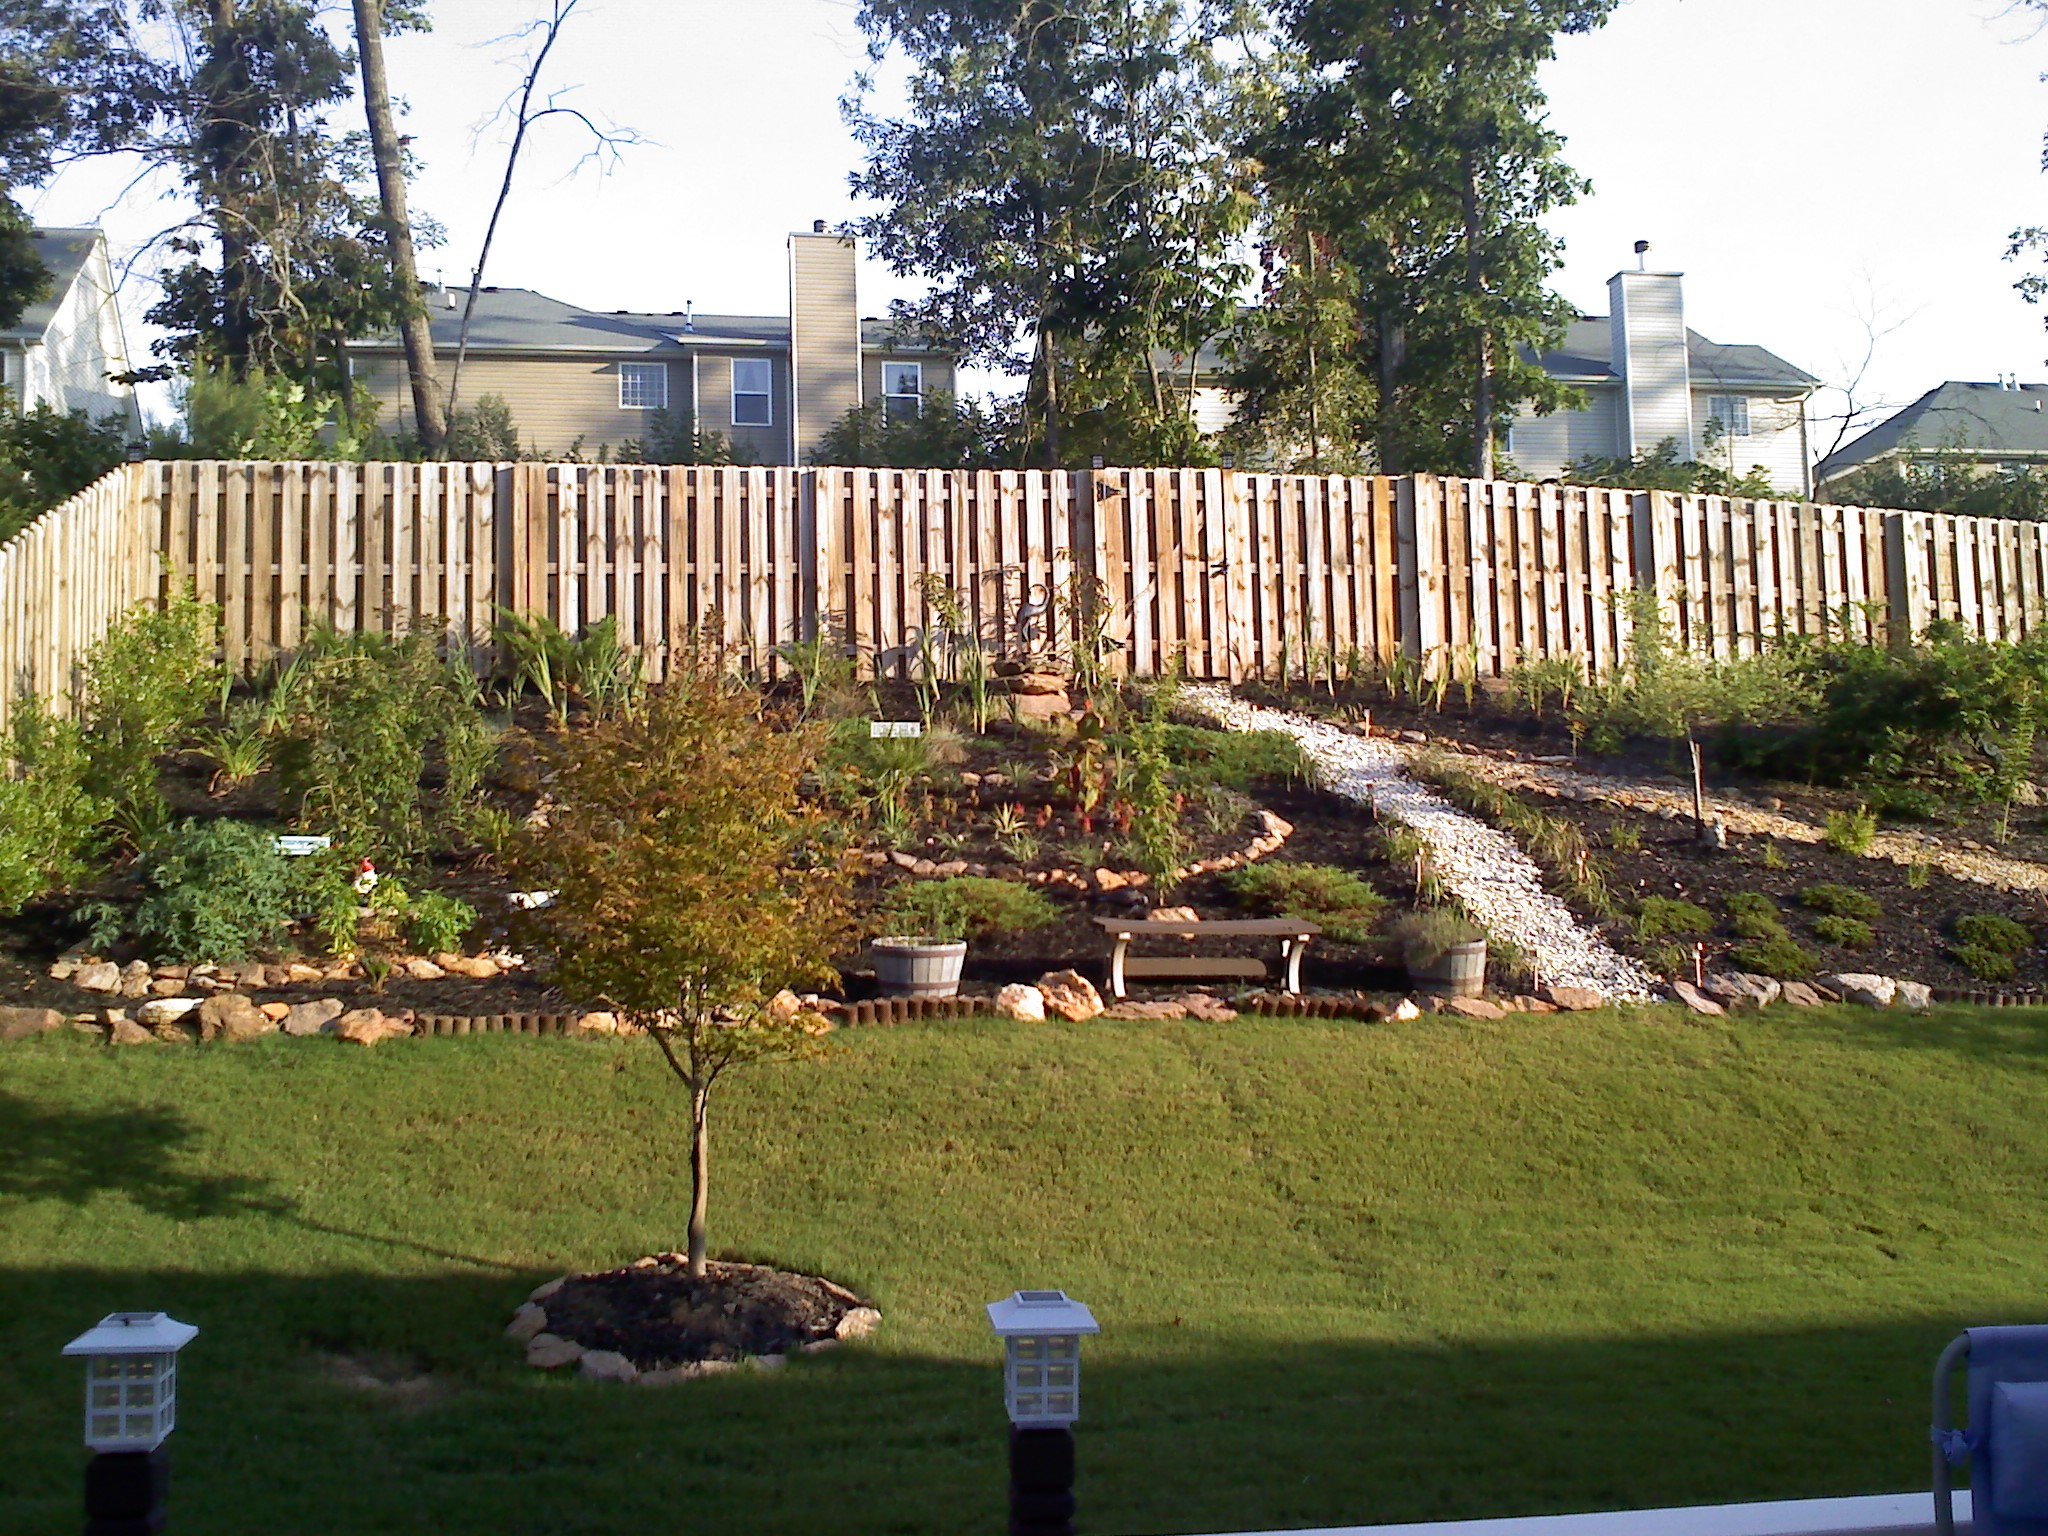 Should we install a retaining wall in our backyard? (engineered